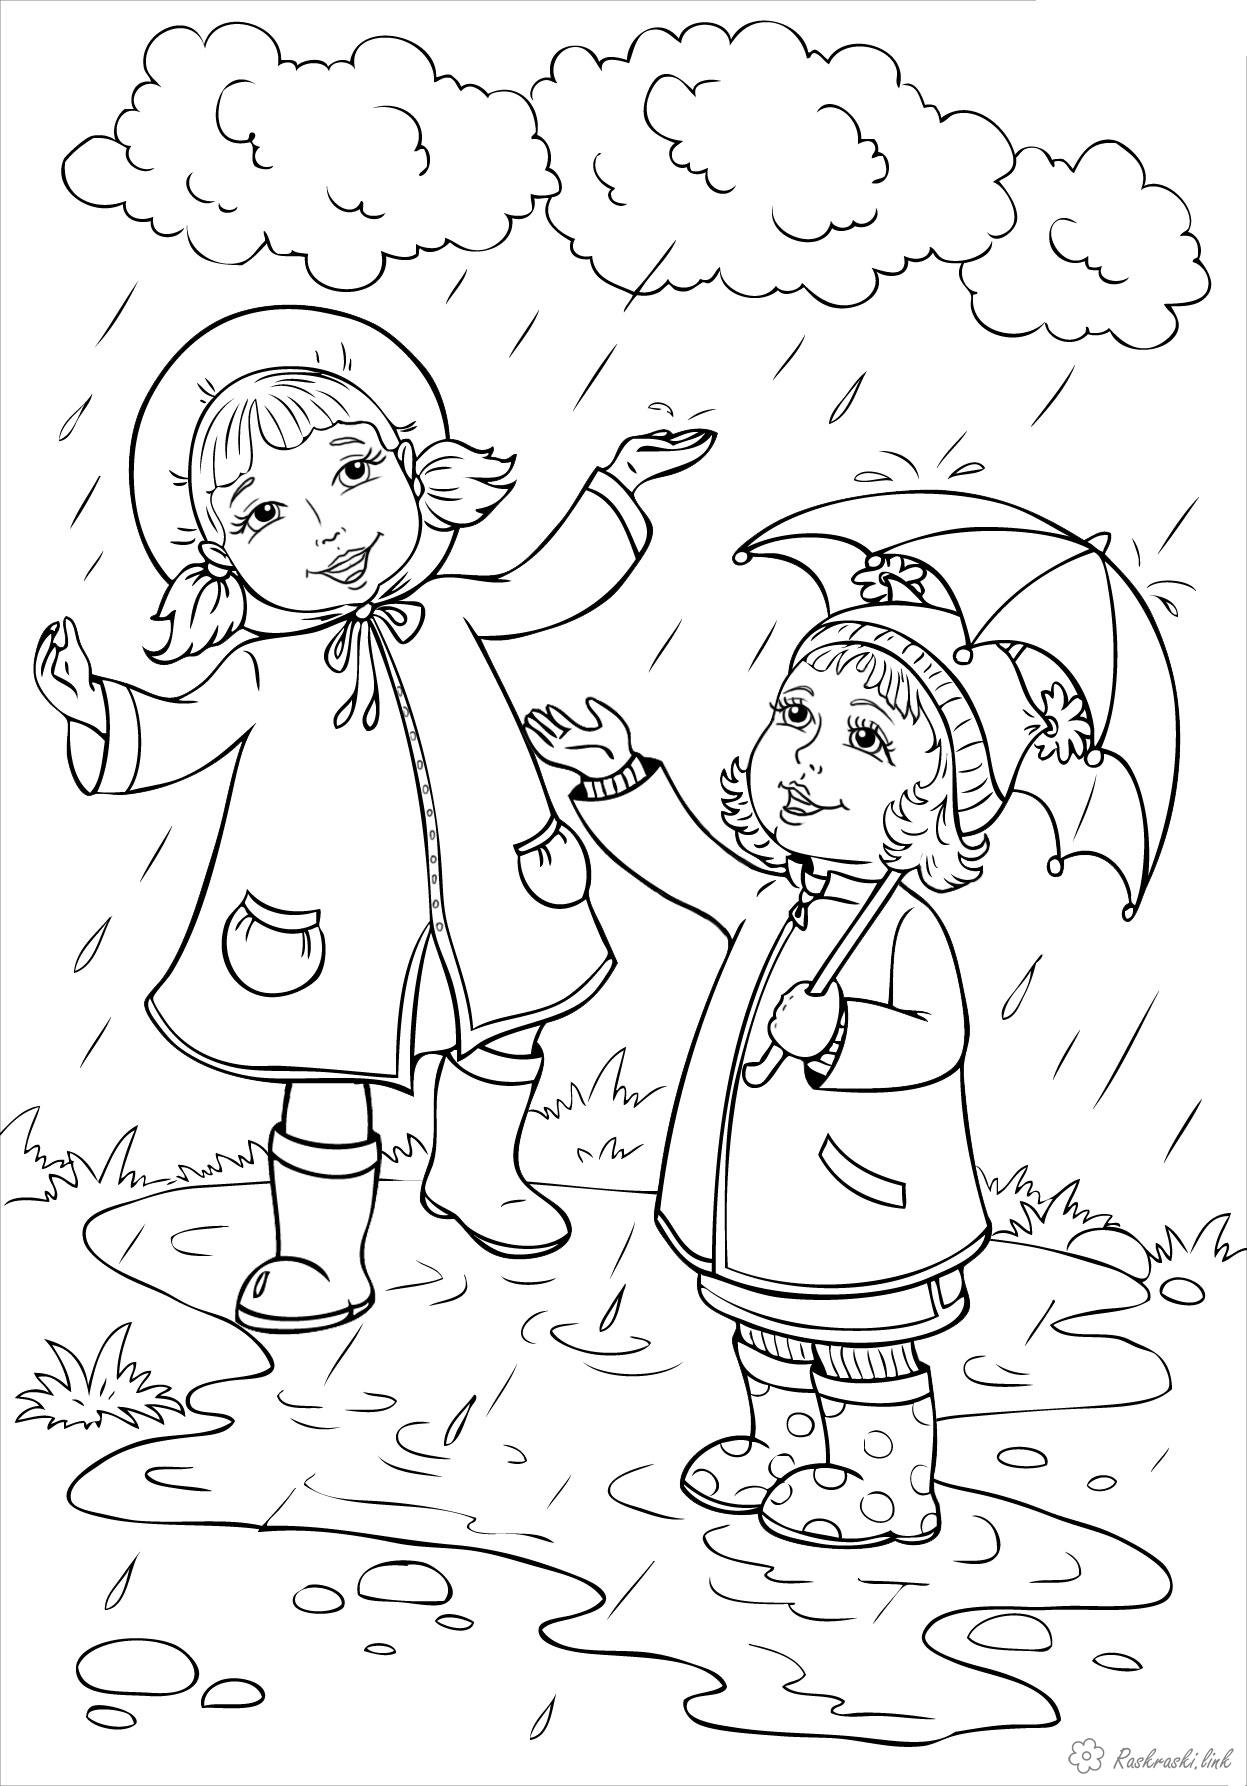 Coloring girls coloring pages books for children, natural phenomena, nature, children, girl, rain